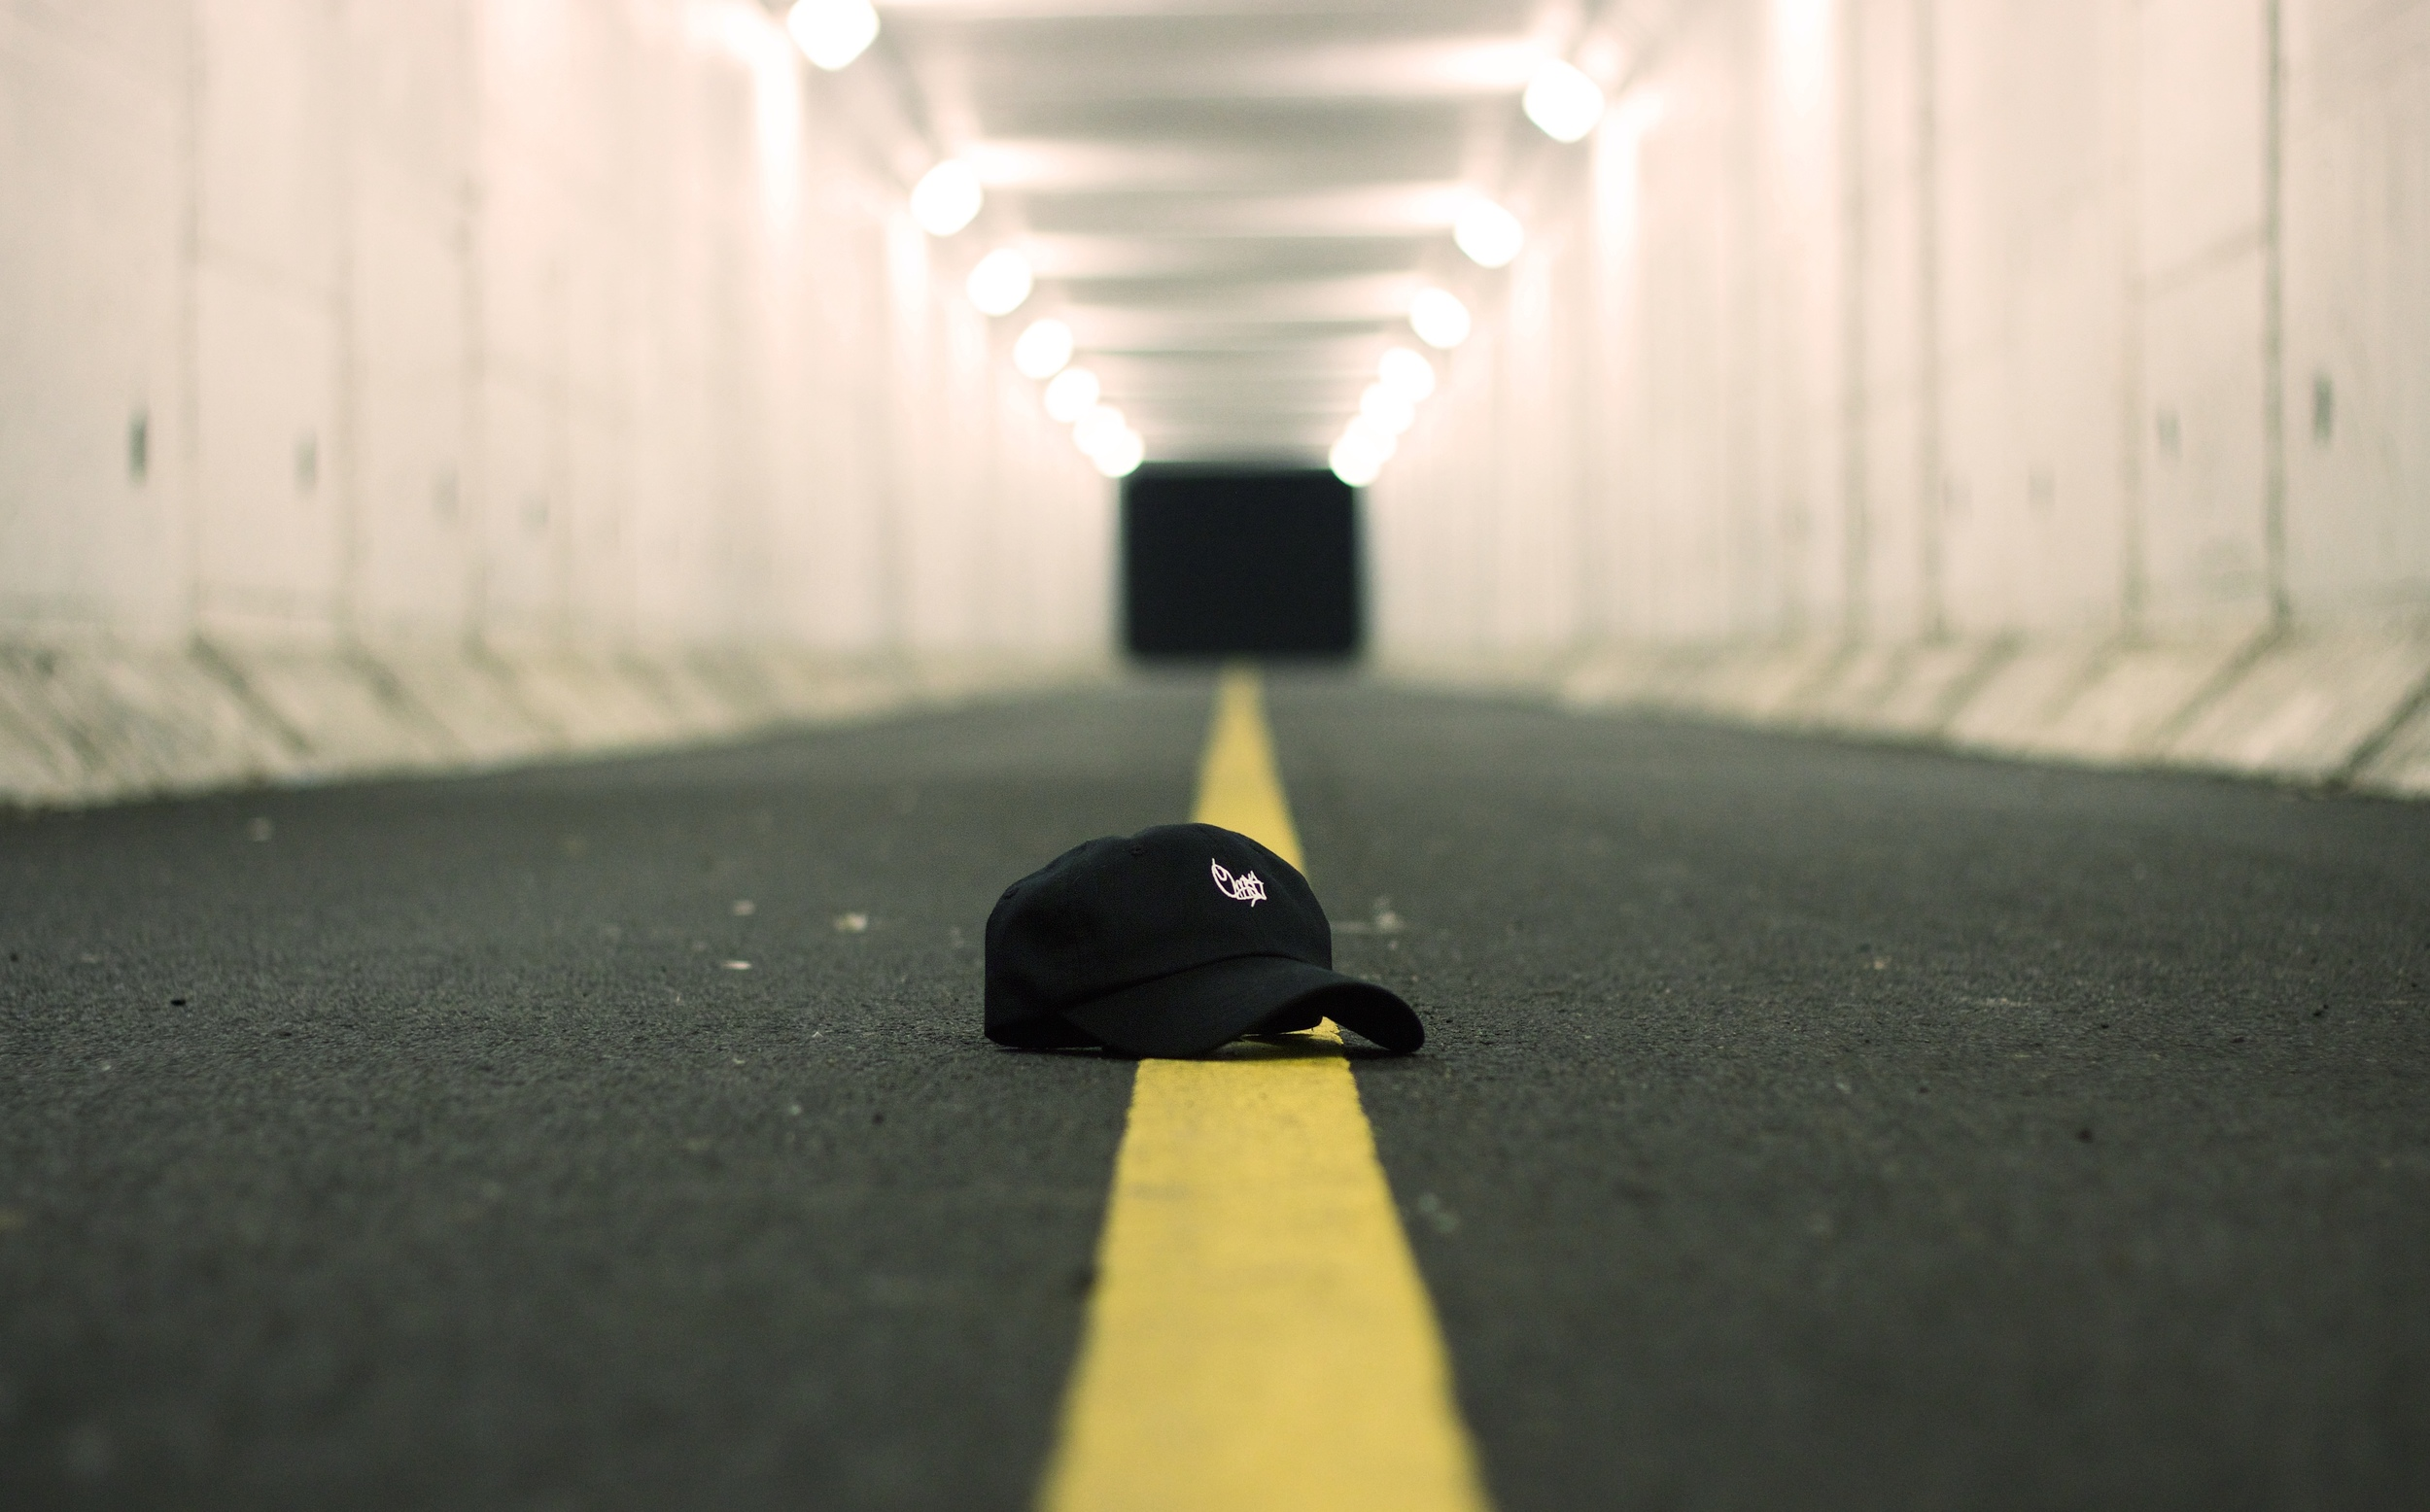 Tunnel Vision #4